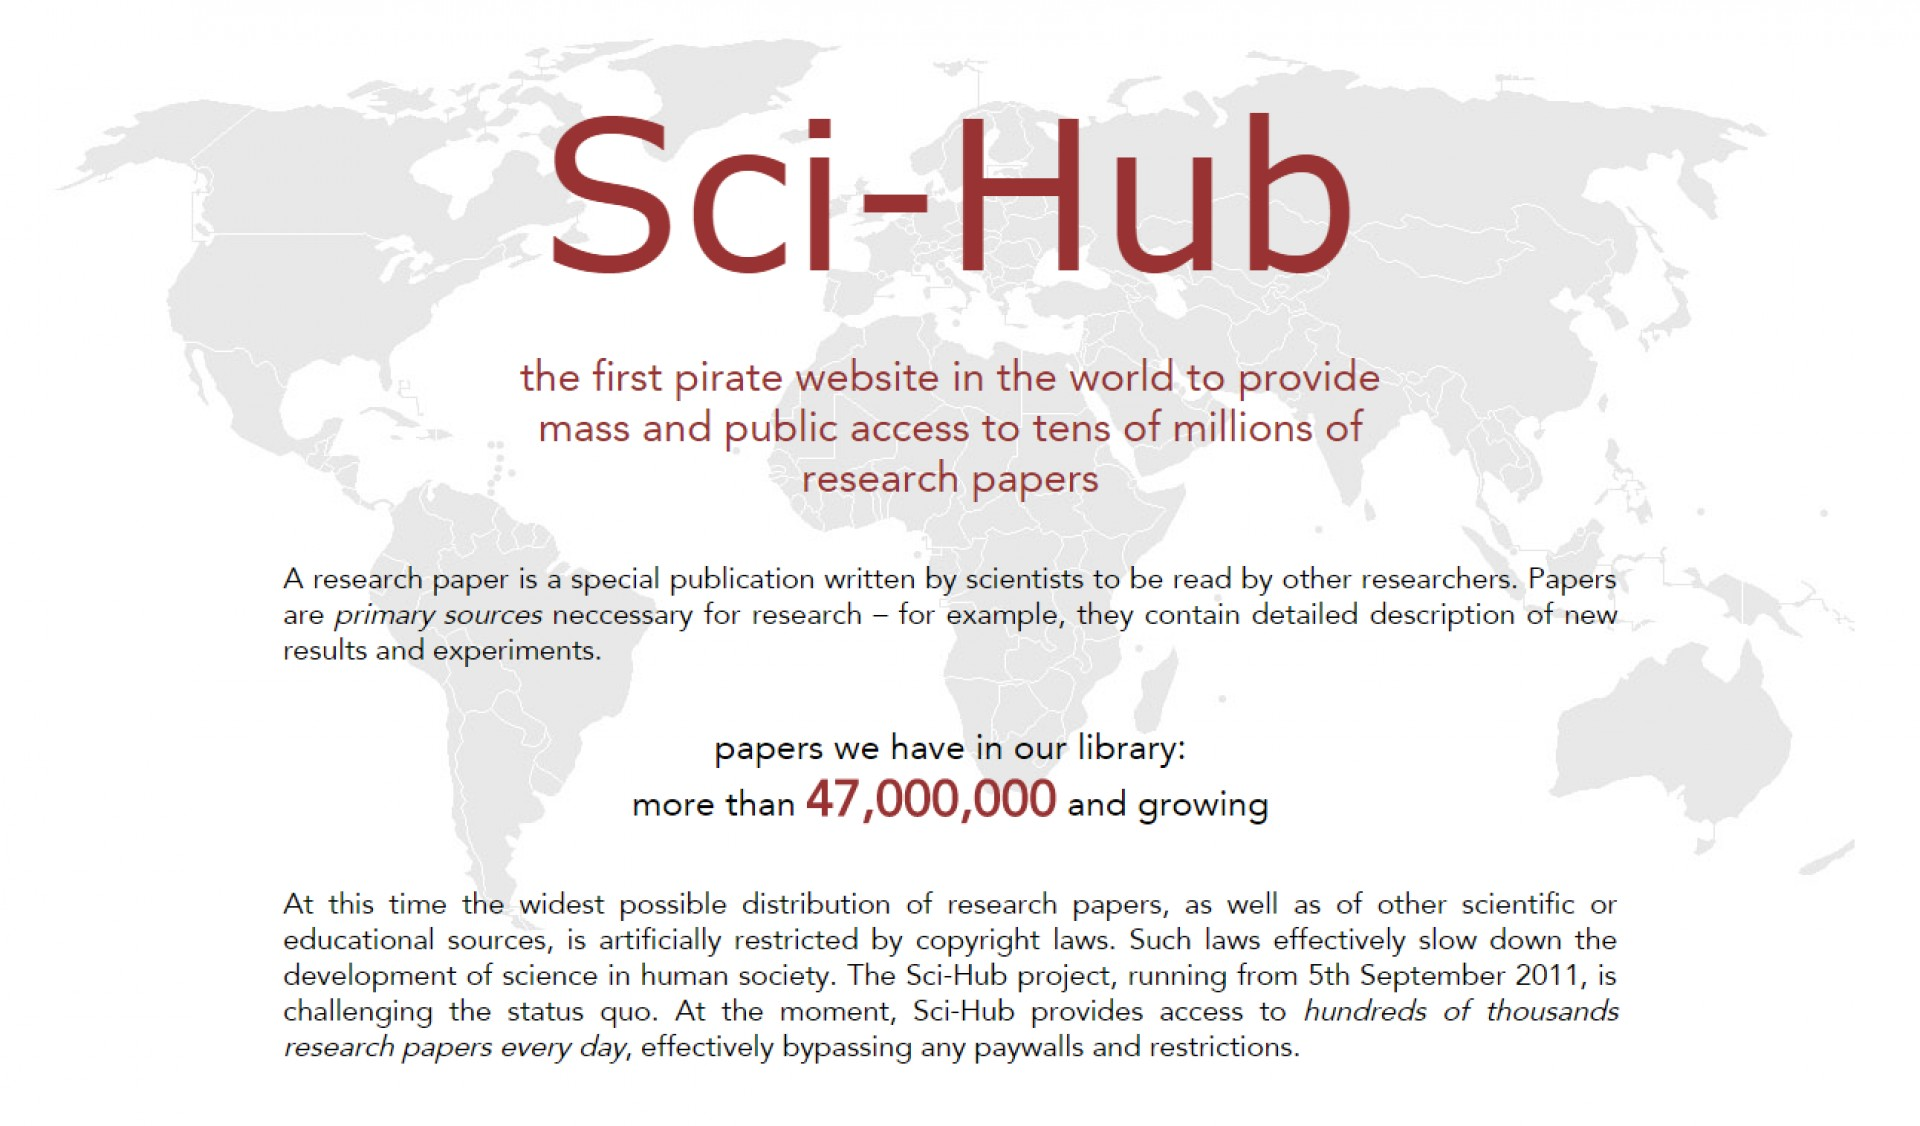 009 8obv05x Research Paper Pirate Website For Amazing Papers 1920